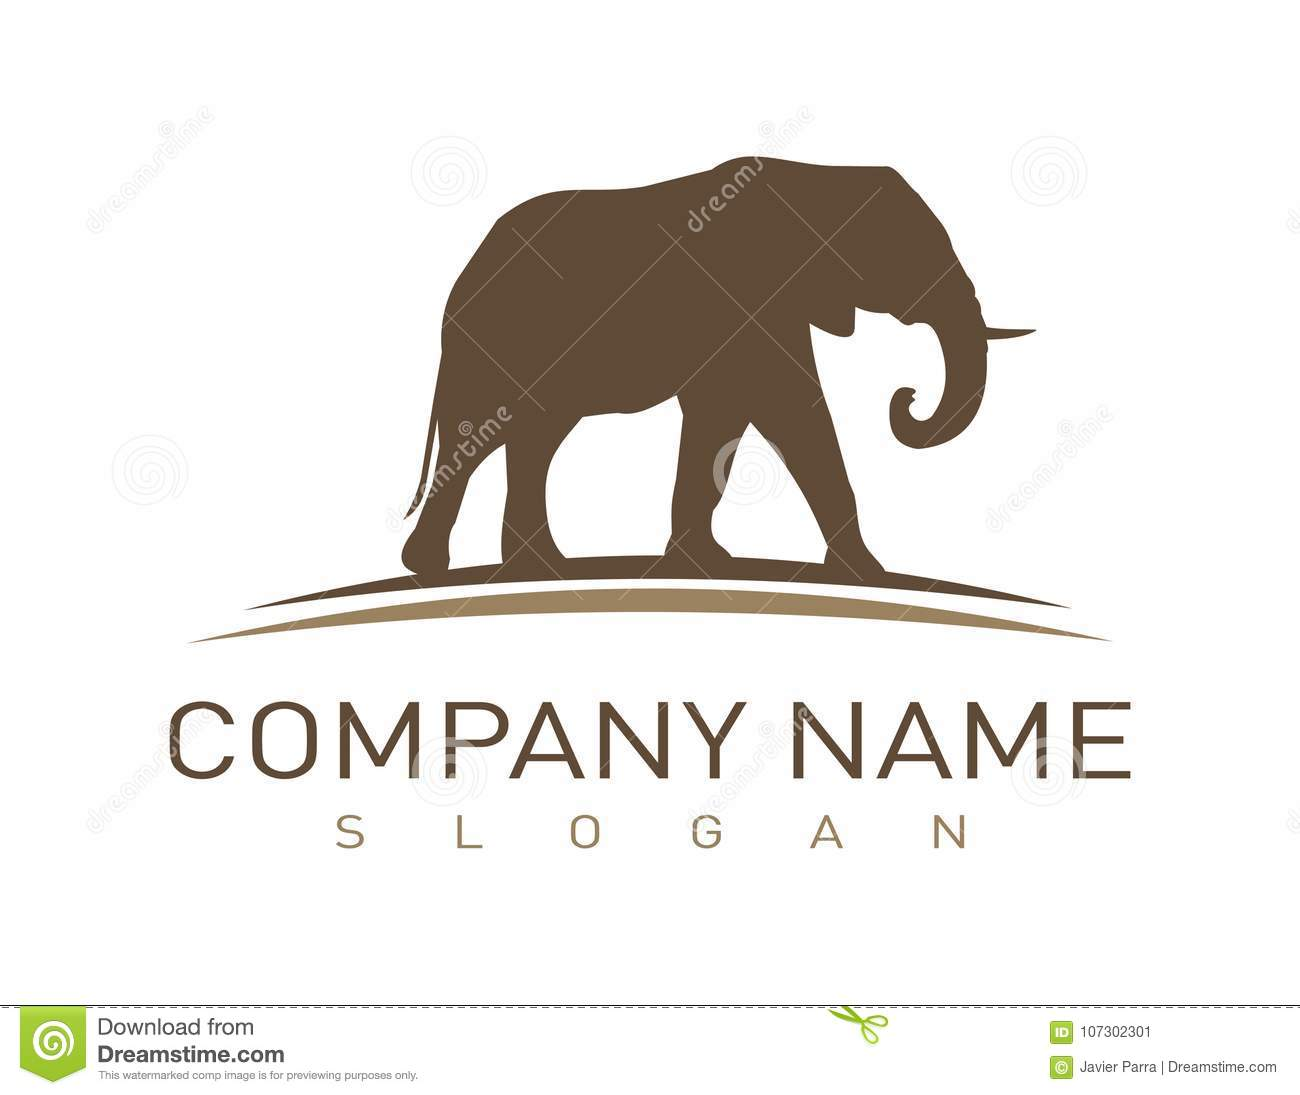 abstract-elephant-logo-white-background-